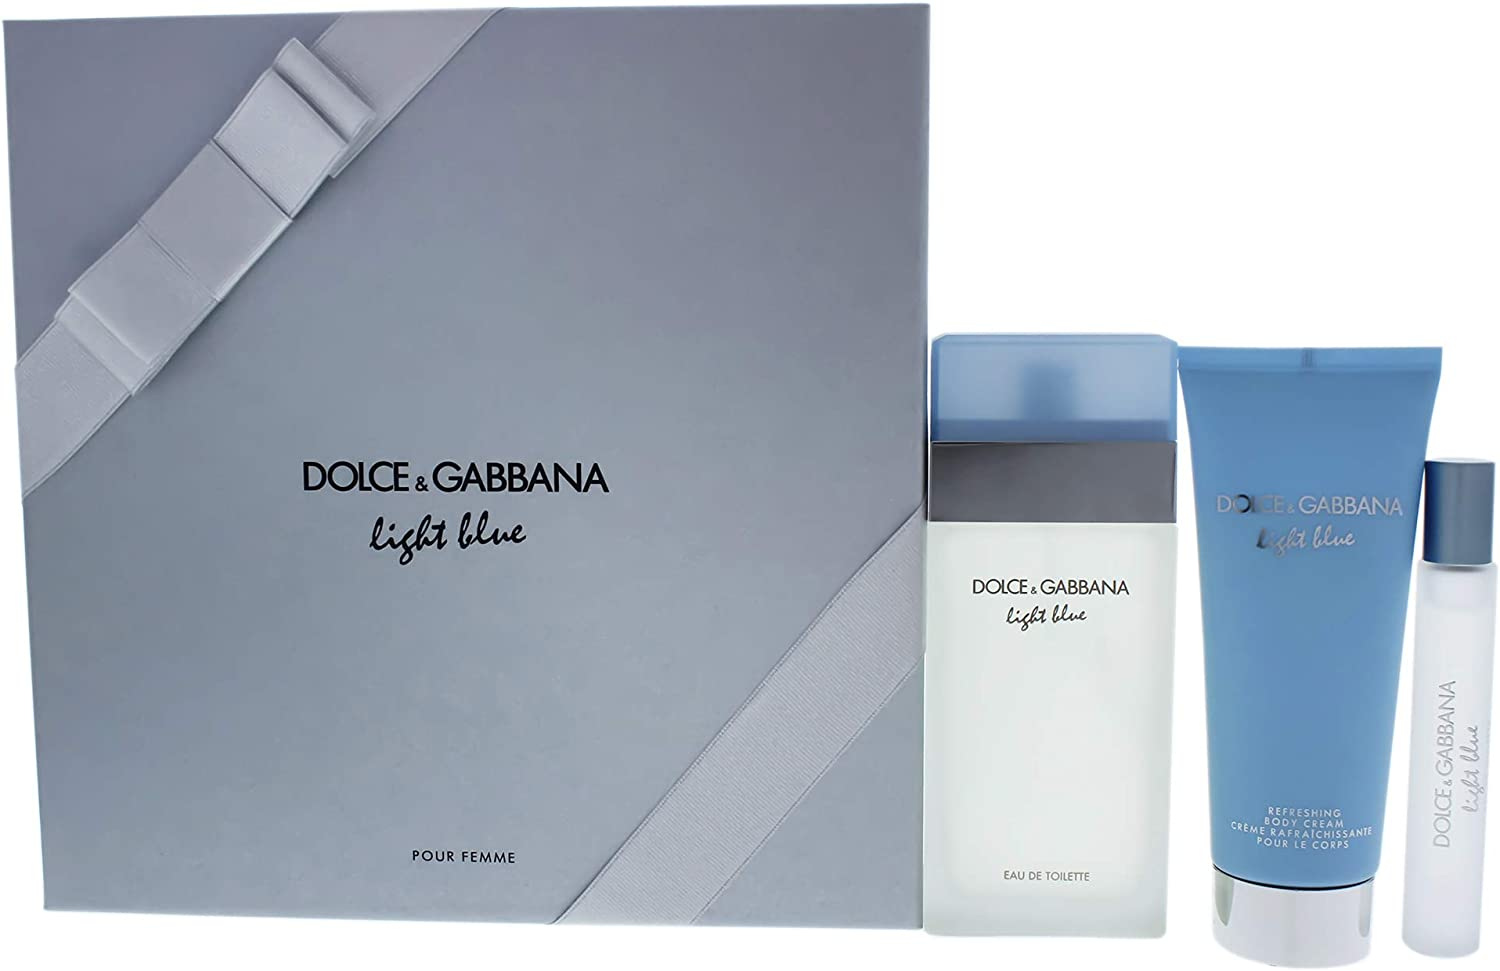 Dolce & Gabbana - Estuche de regalo eau de toilette light blue dolce & gabanna: Amazon.es: Belleza